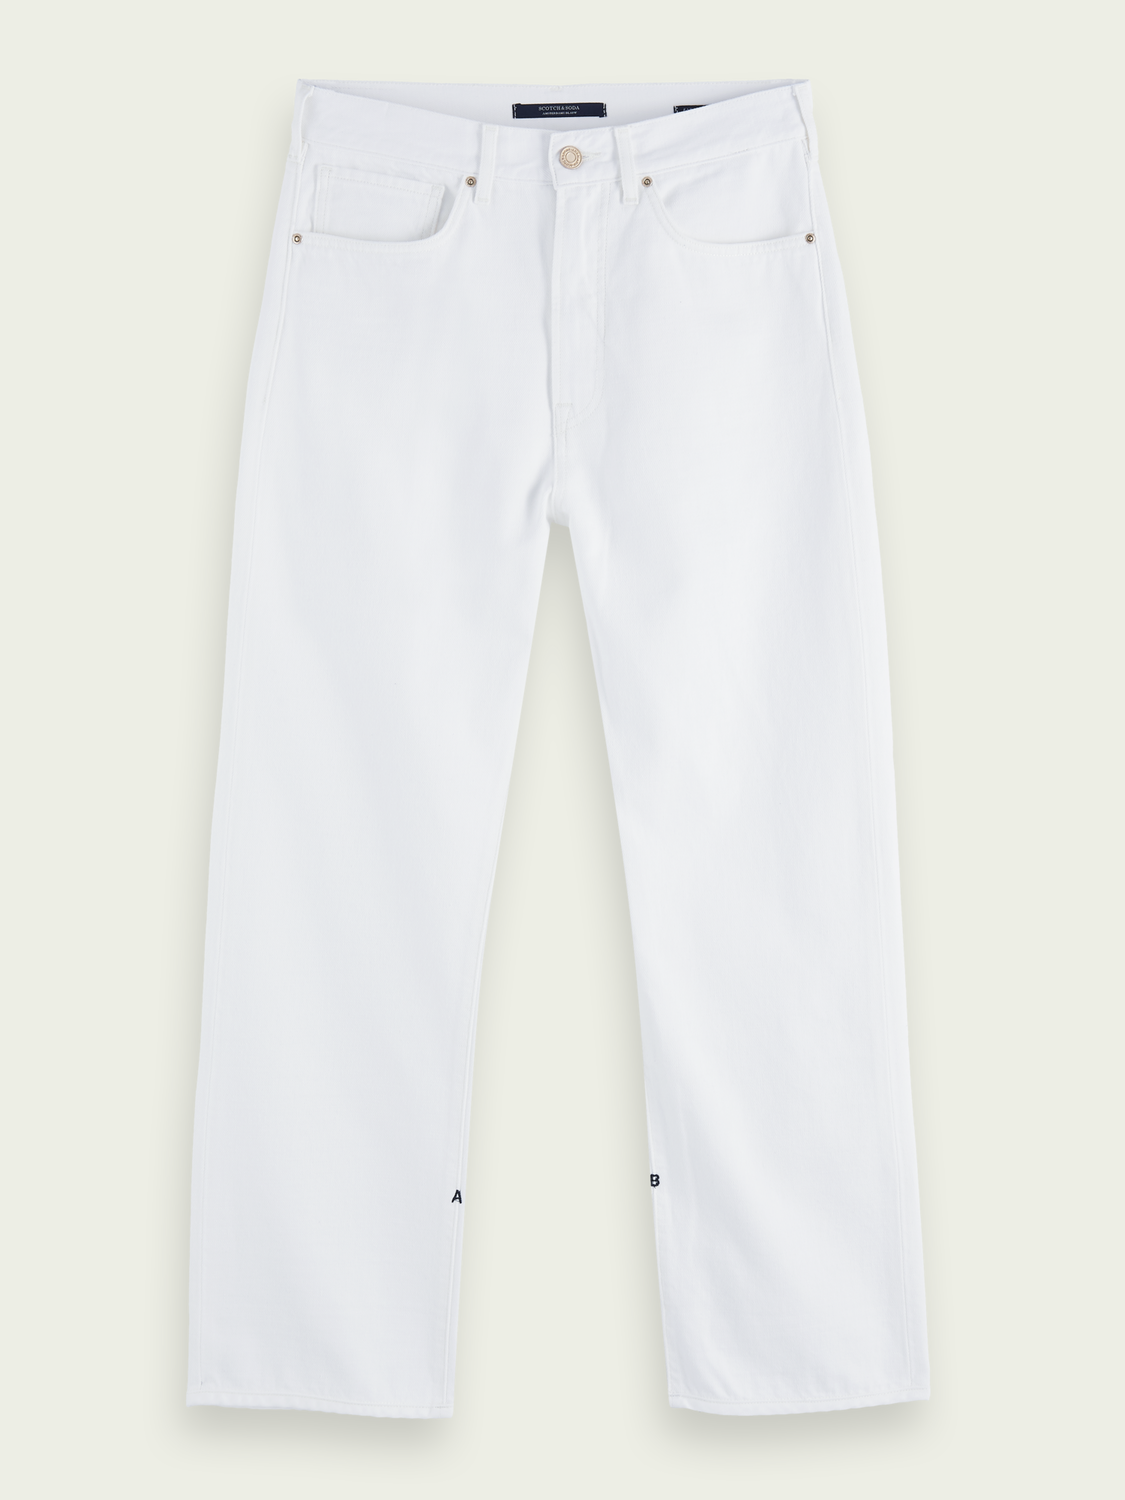 Women Extra Boyfriend - 100% cotton - Coconut White | medium-rise jeans